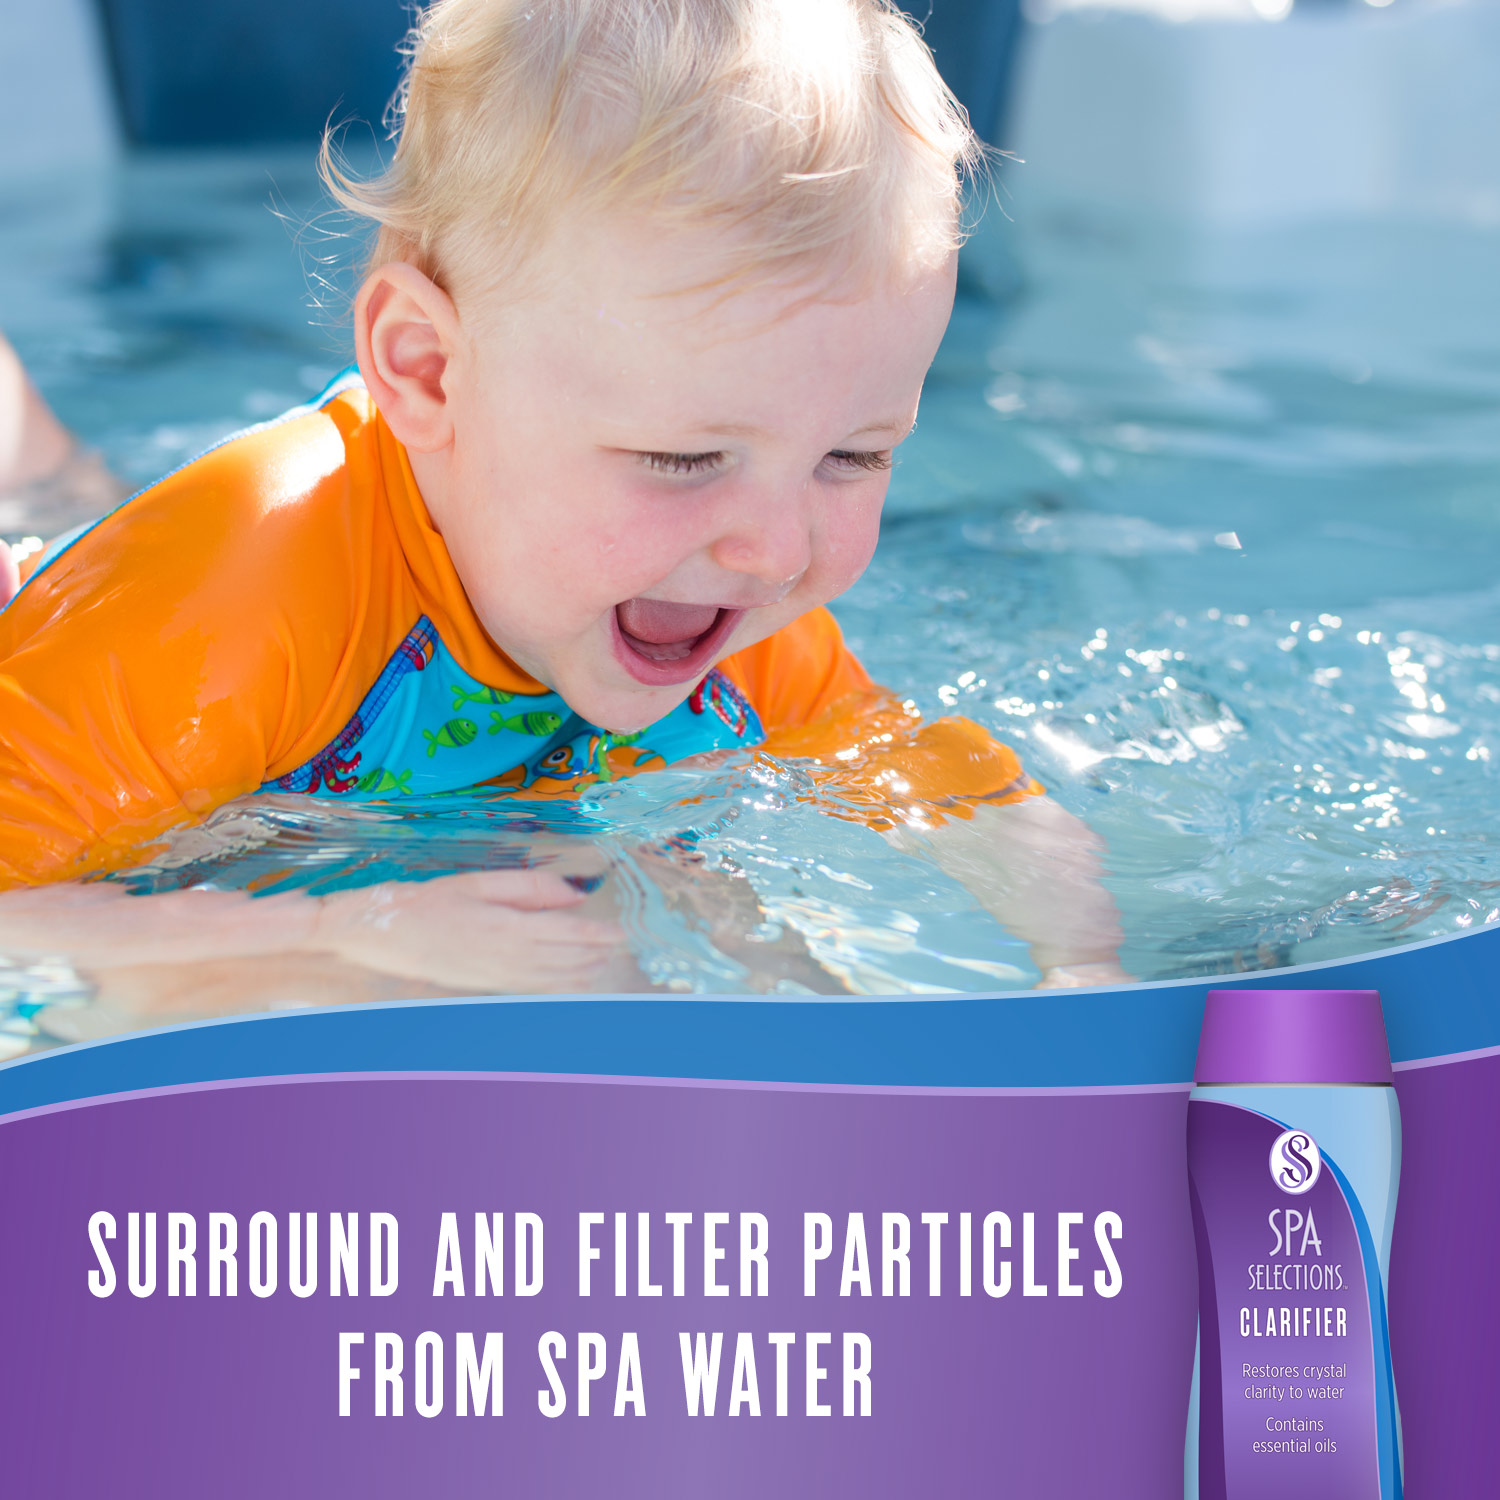 Spa Selections Clarifier surrounds and filters particles from spa water. Photo of young child swimming in pool.